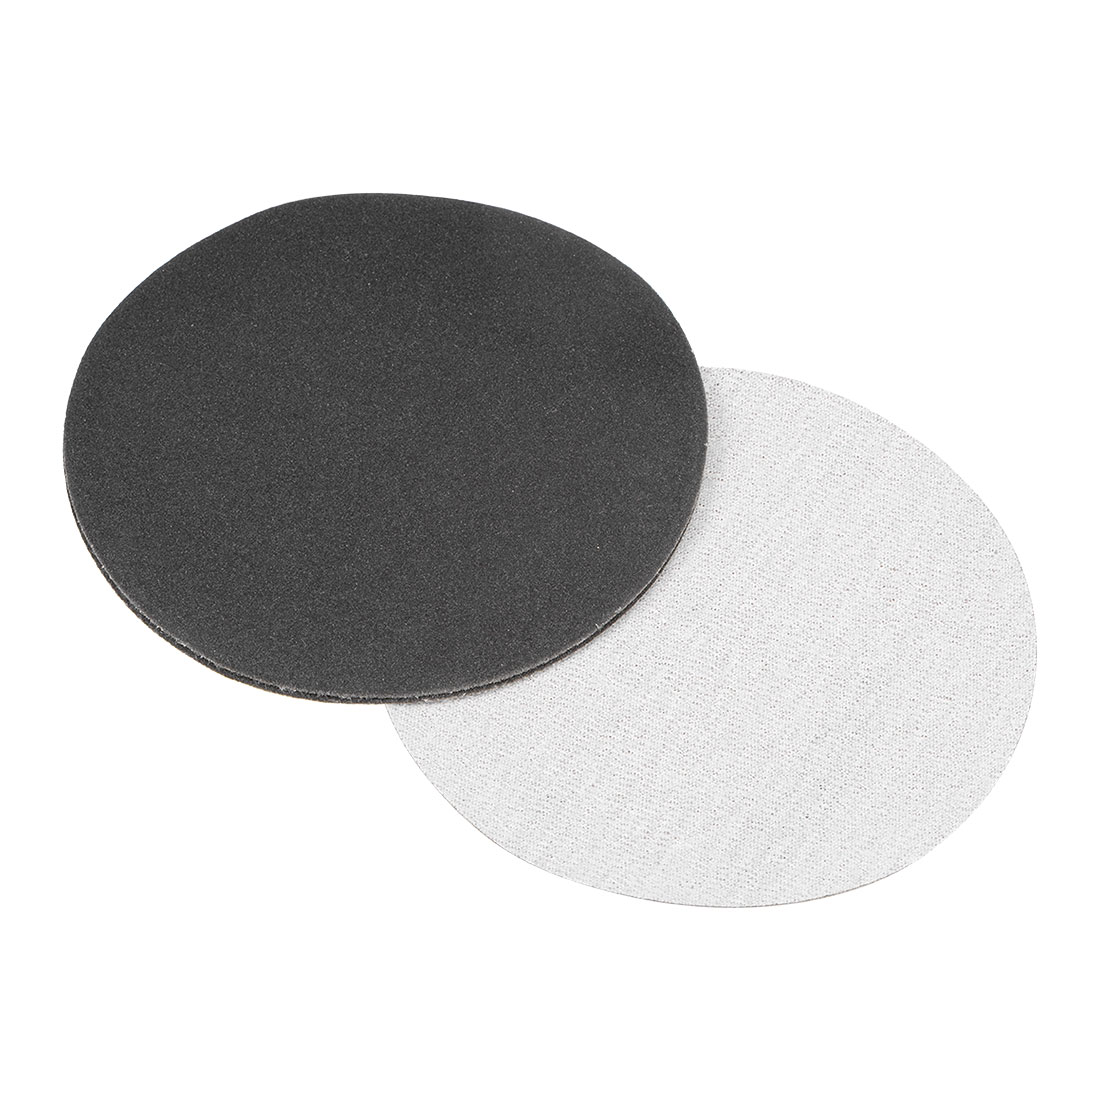 5 inch Wet Dry Discs 180 Grit Hook and Loop Sanding Disc Silicon Carbide 3pcs